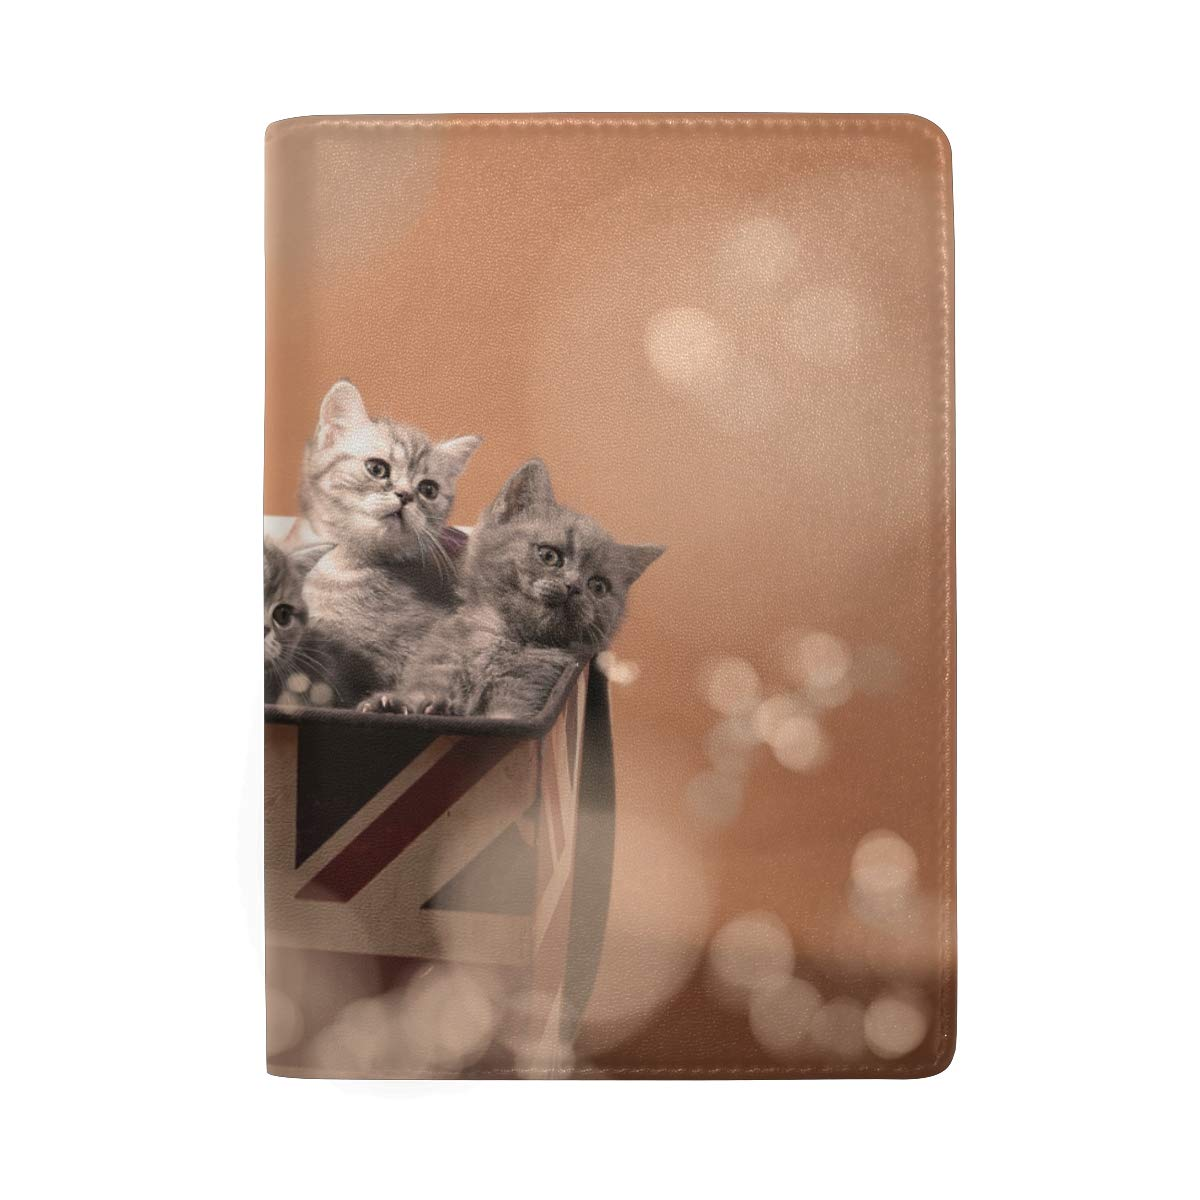 Cute Cat Small Kittens In Box Leather Passport Holder Cover Case Protector for Men Women Travel with Slots